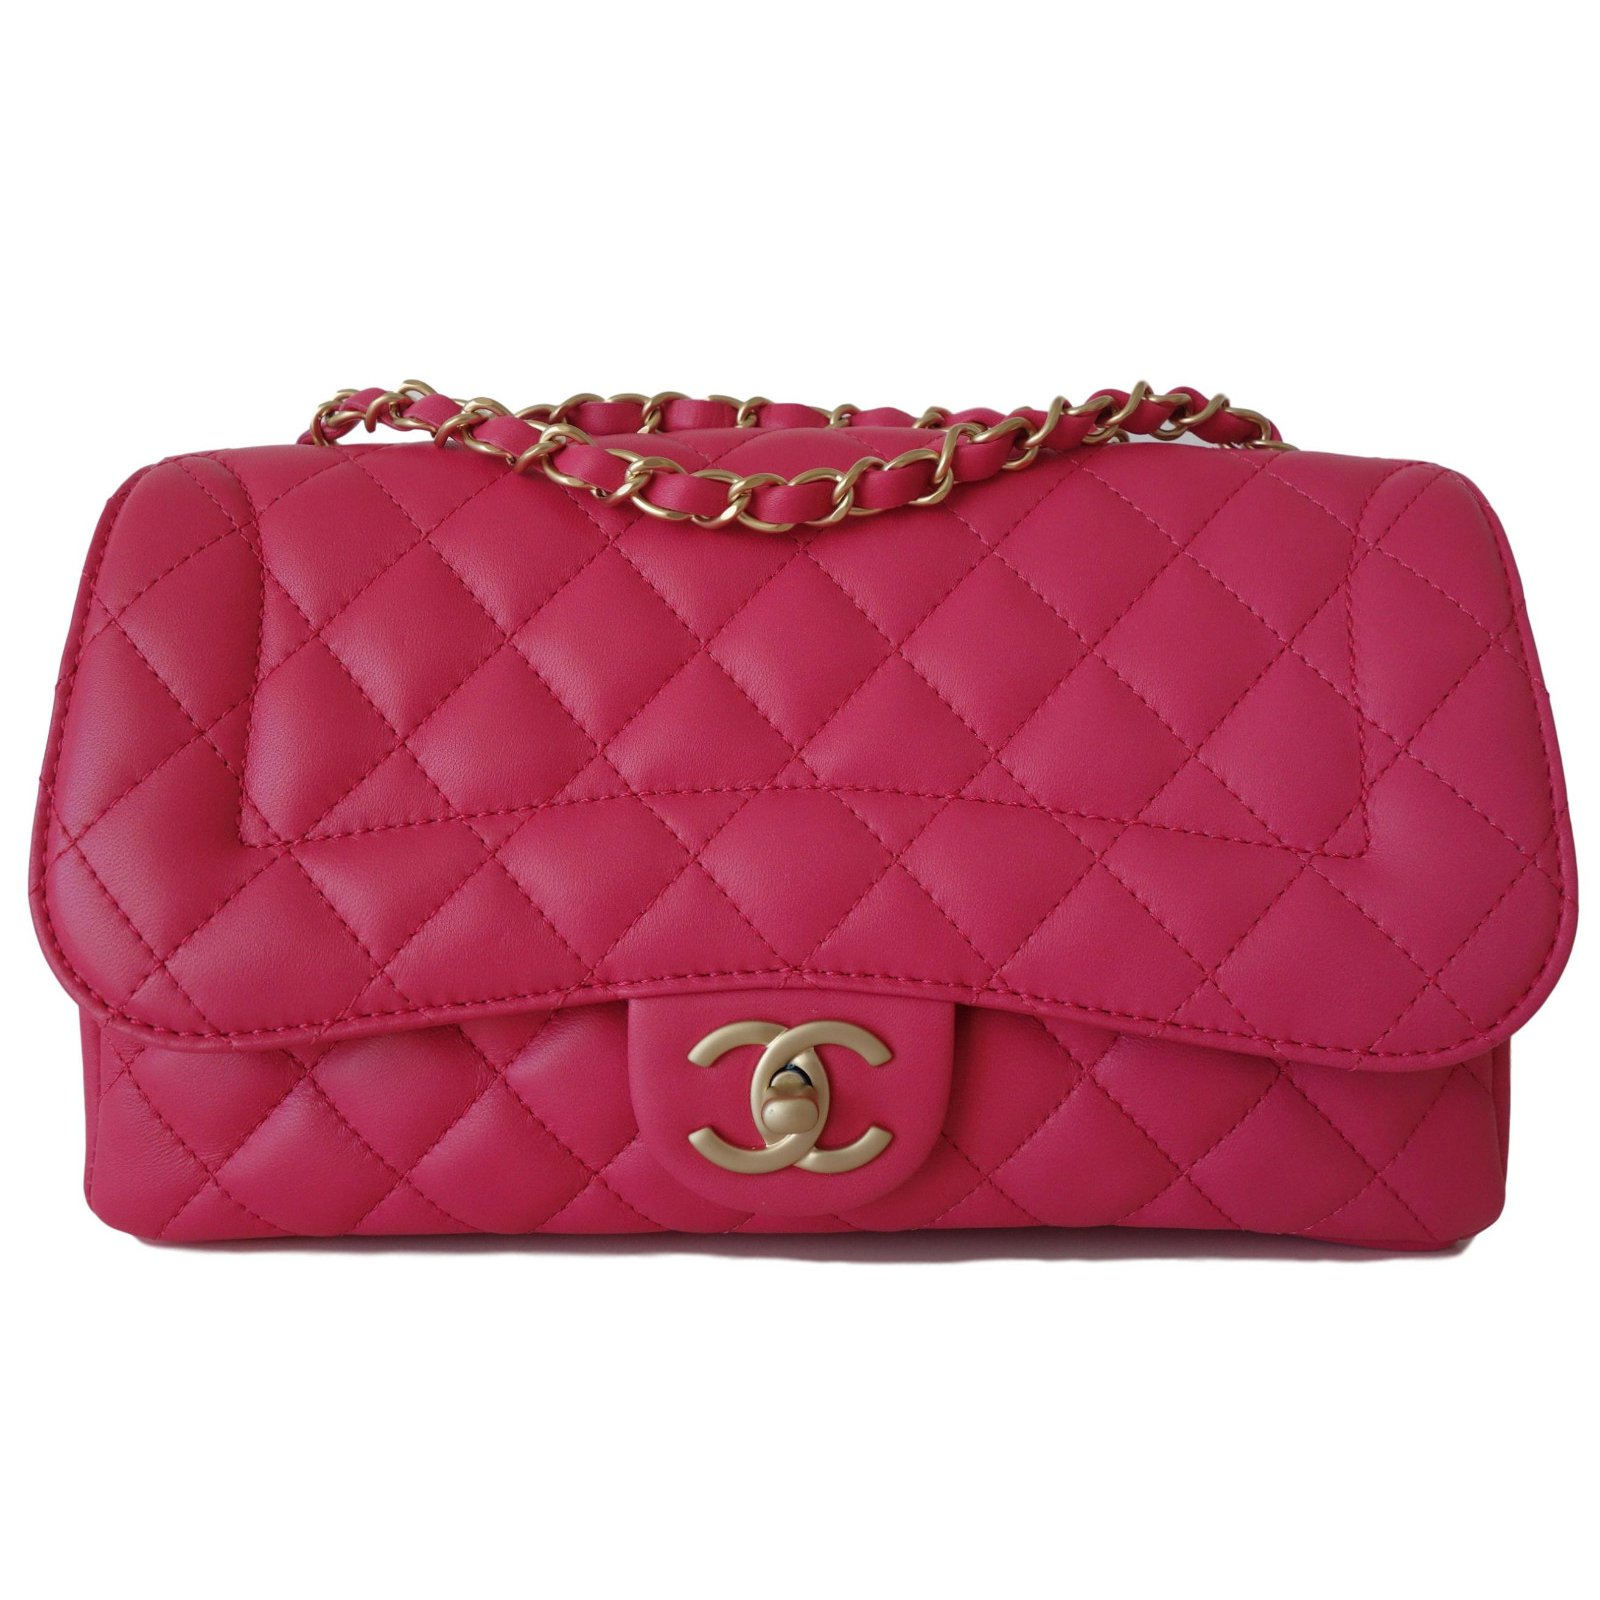 Chanel Timeless 2017 Handbags Leather Pink Ref 54966